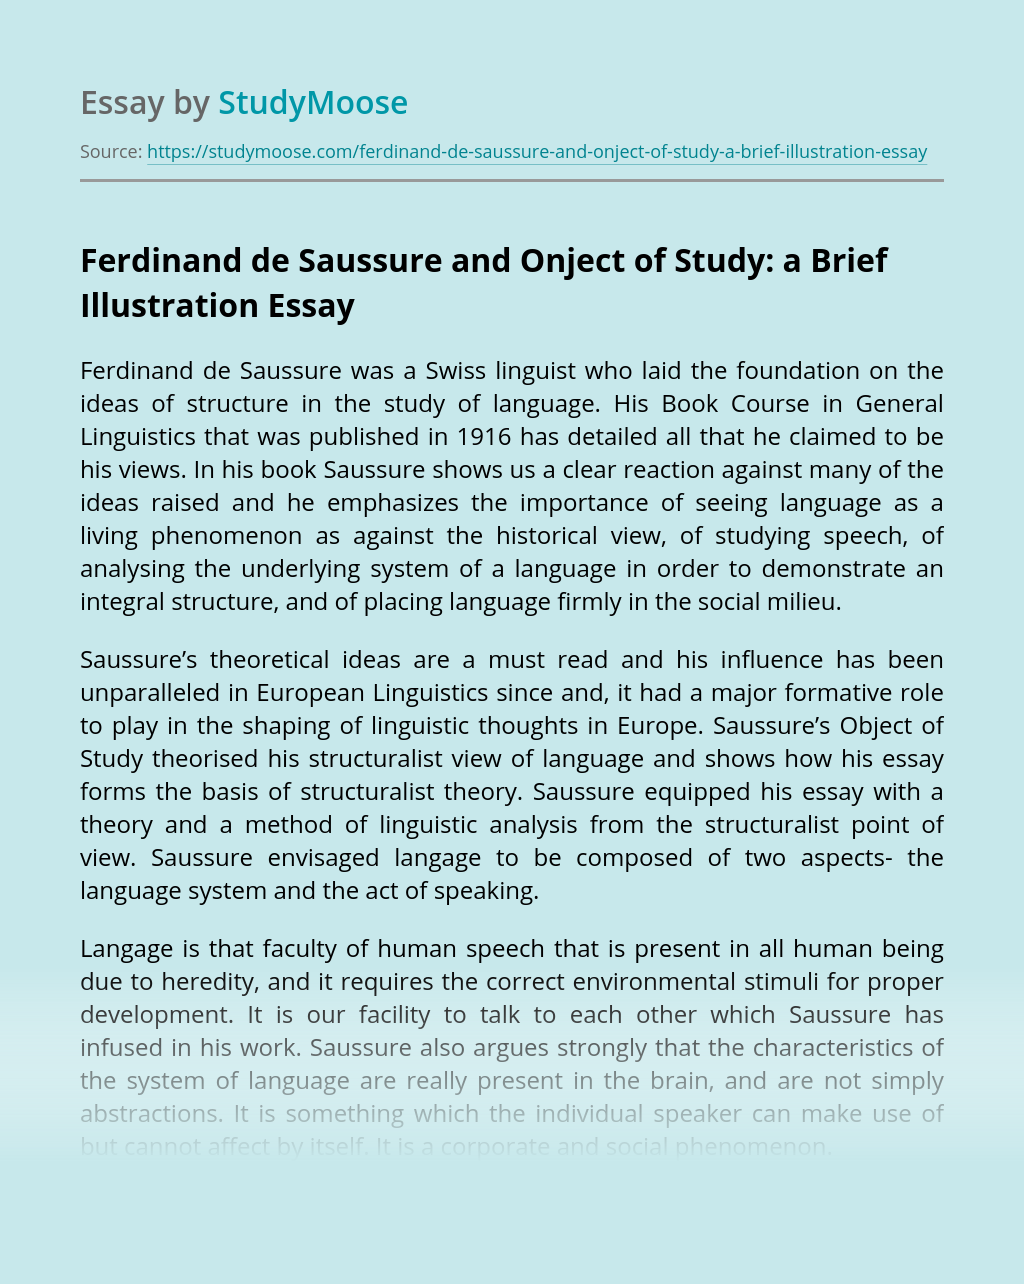 Ferdinand de Saussure and Onject of Study: a Brief Illustration